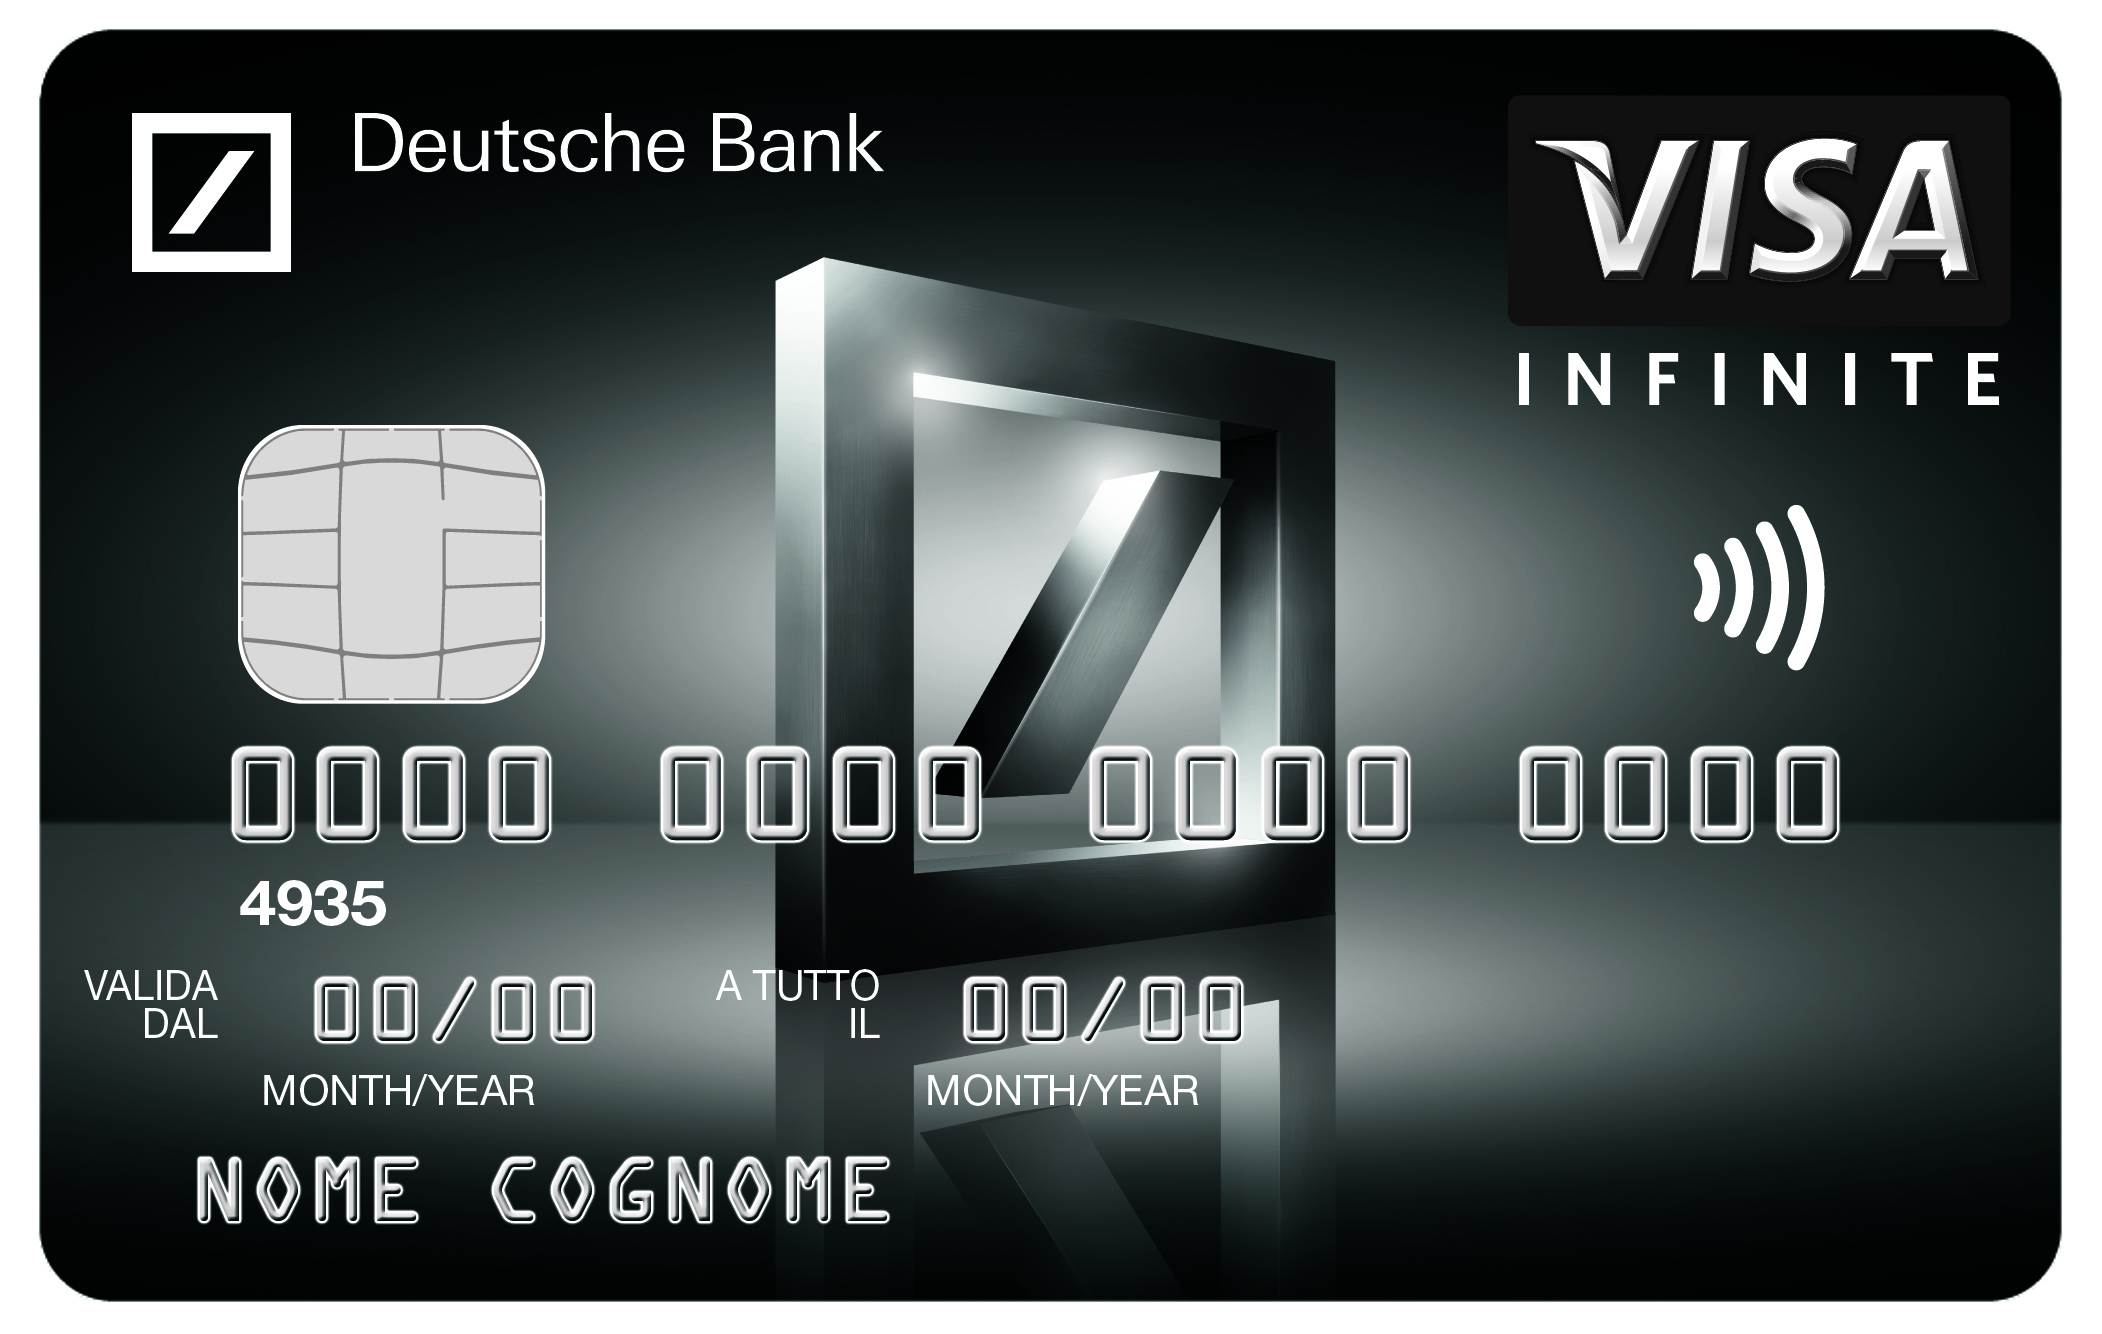 Deutsche Bank lancia Visa Infinite la sua prima Black Card Visa